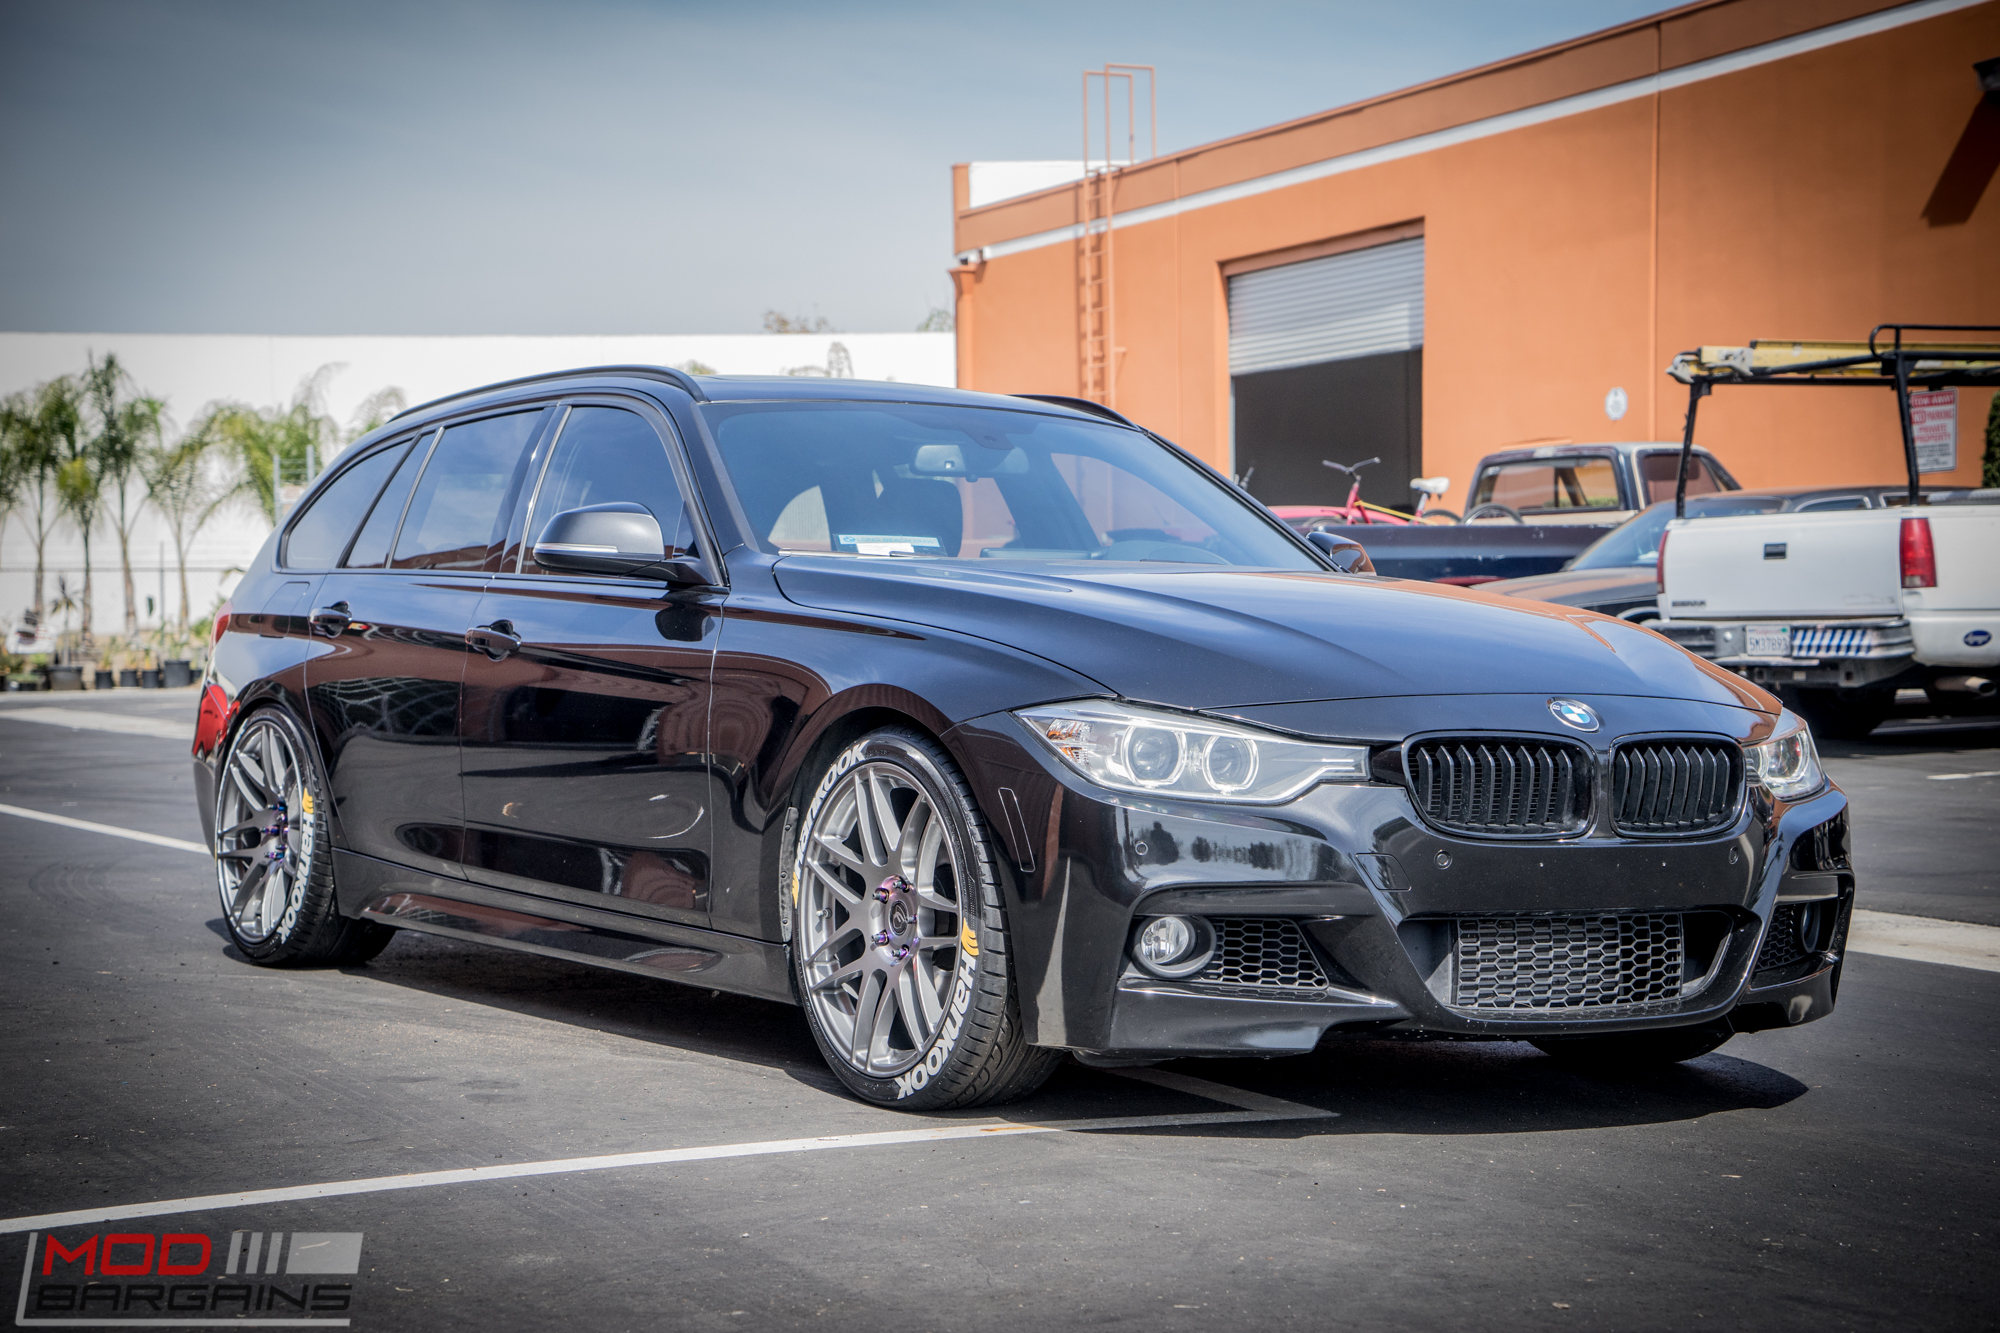 f31 bmw 328i touring on bc coilovers stuns on forgestars. Black Bedroom Furniture Sets. Home Design Ideas